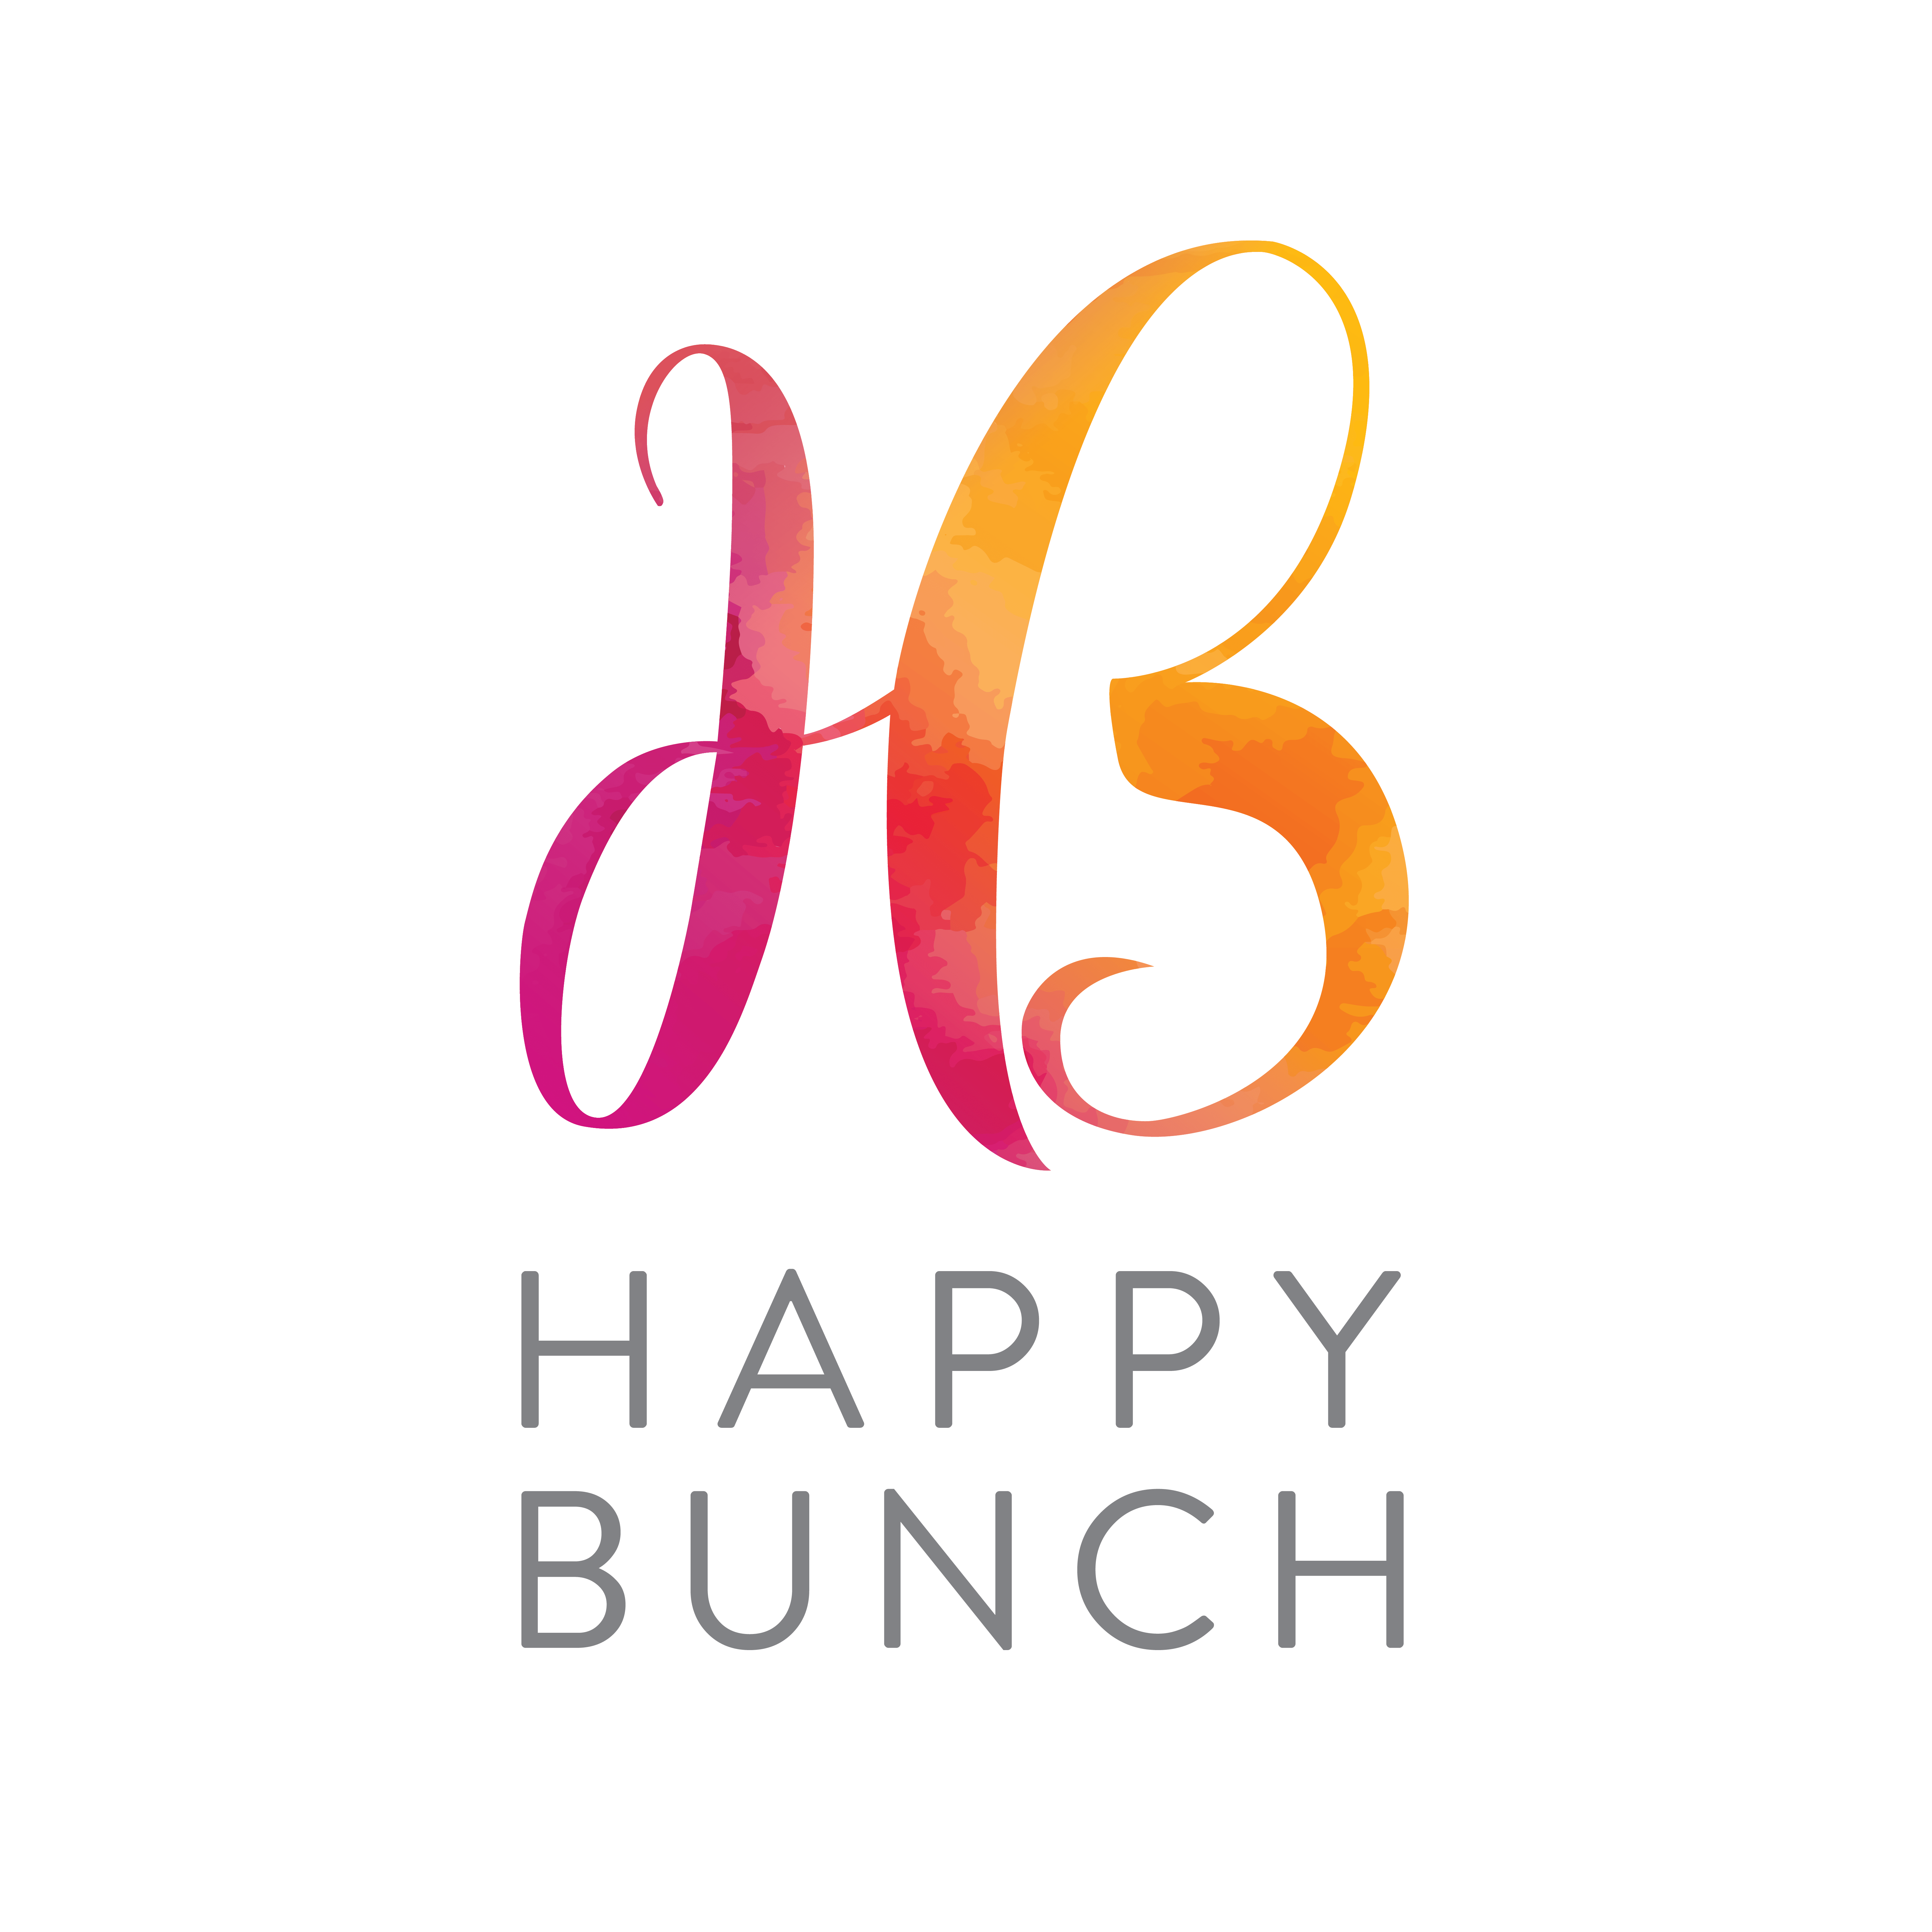 Coupon design png. Happy bunch promo code